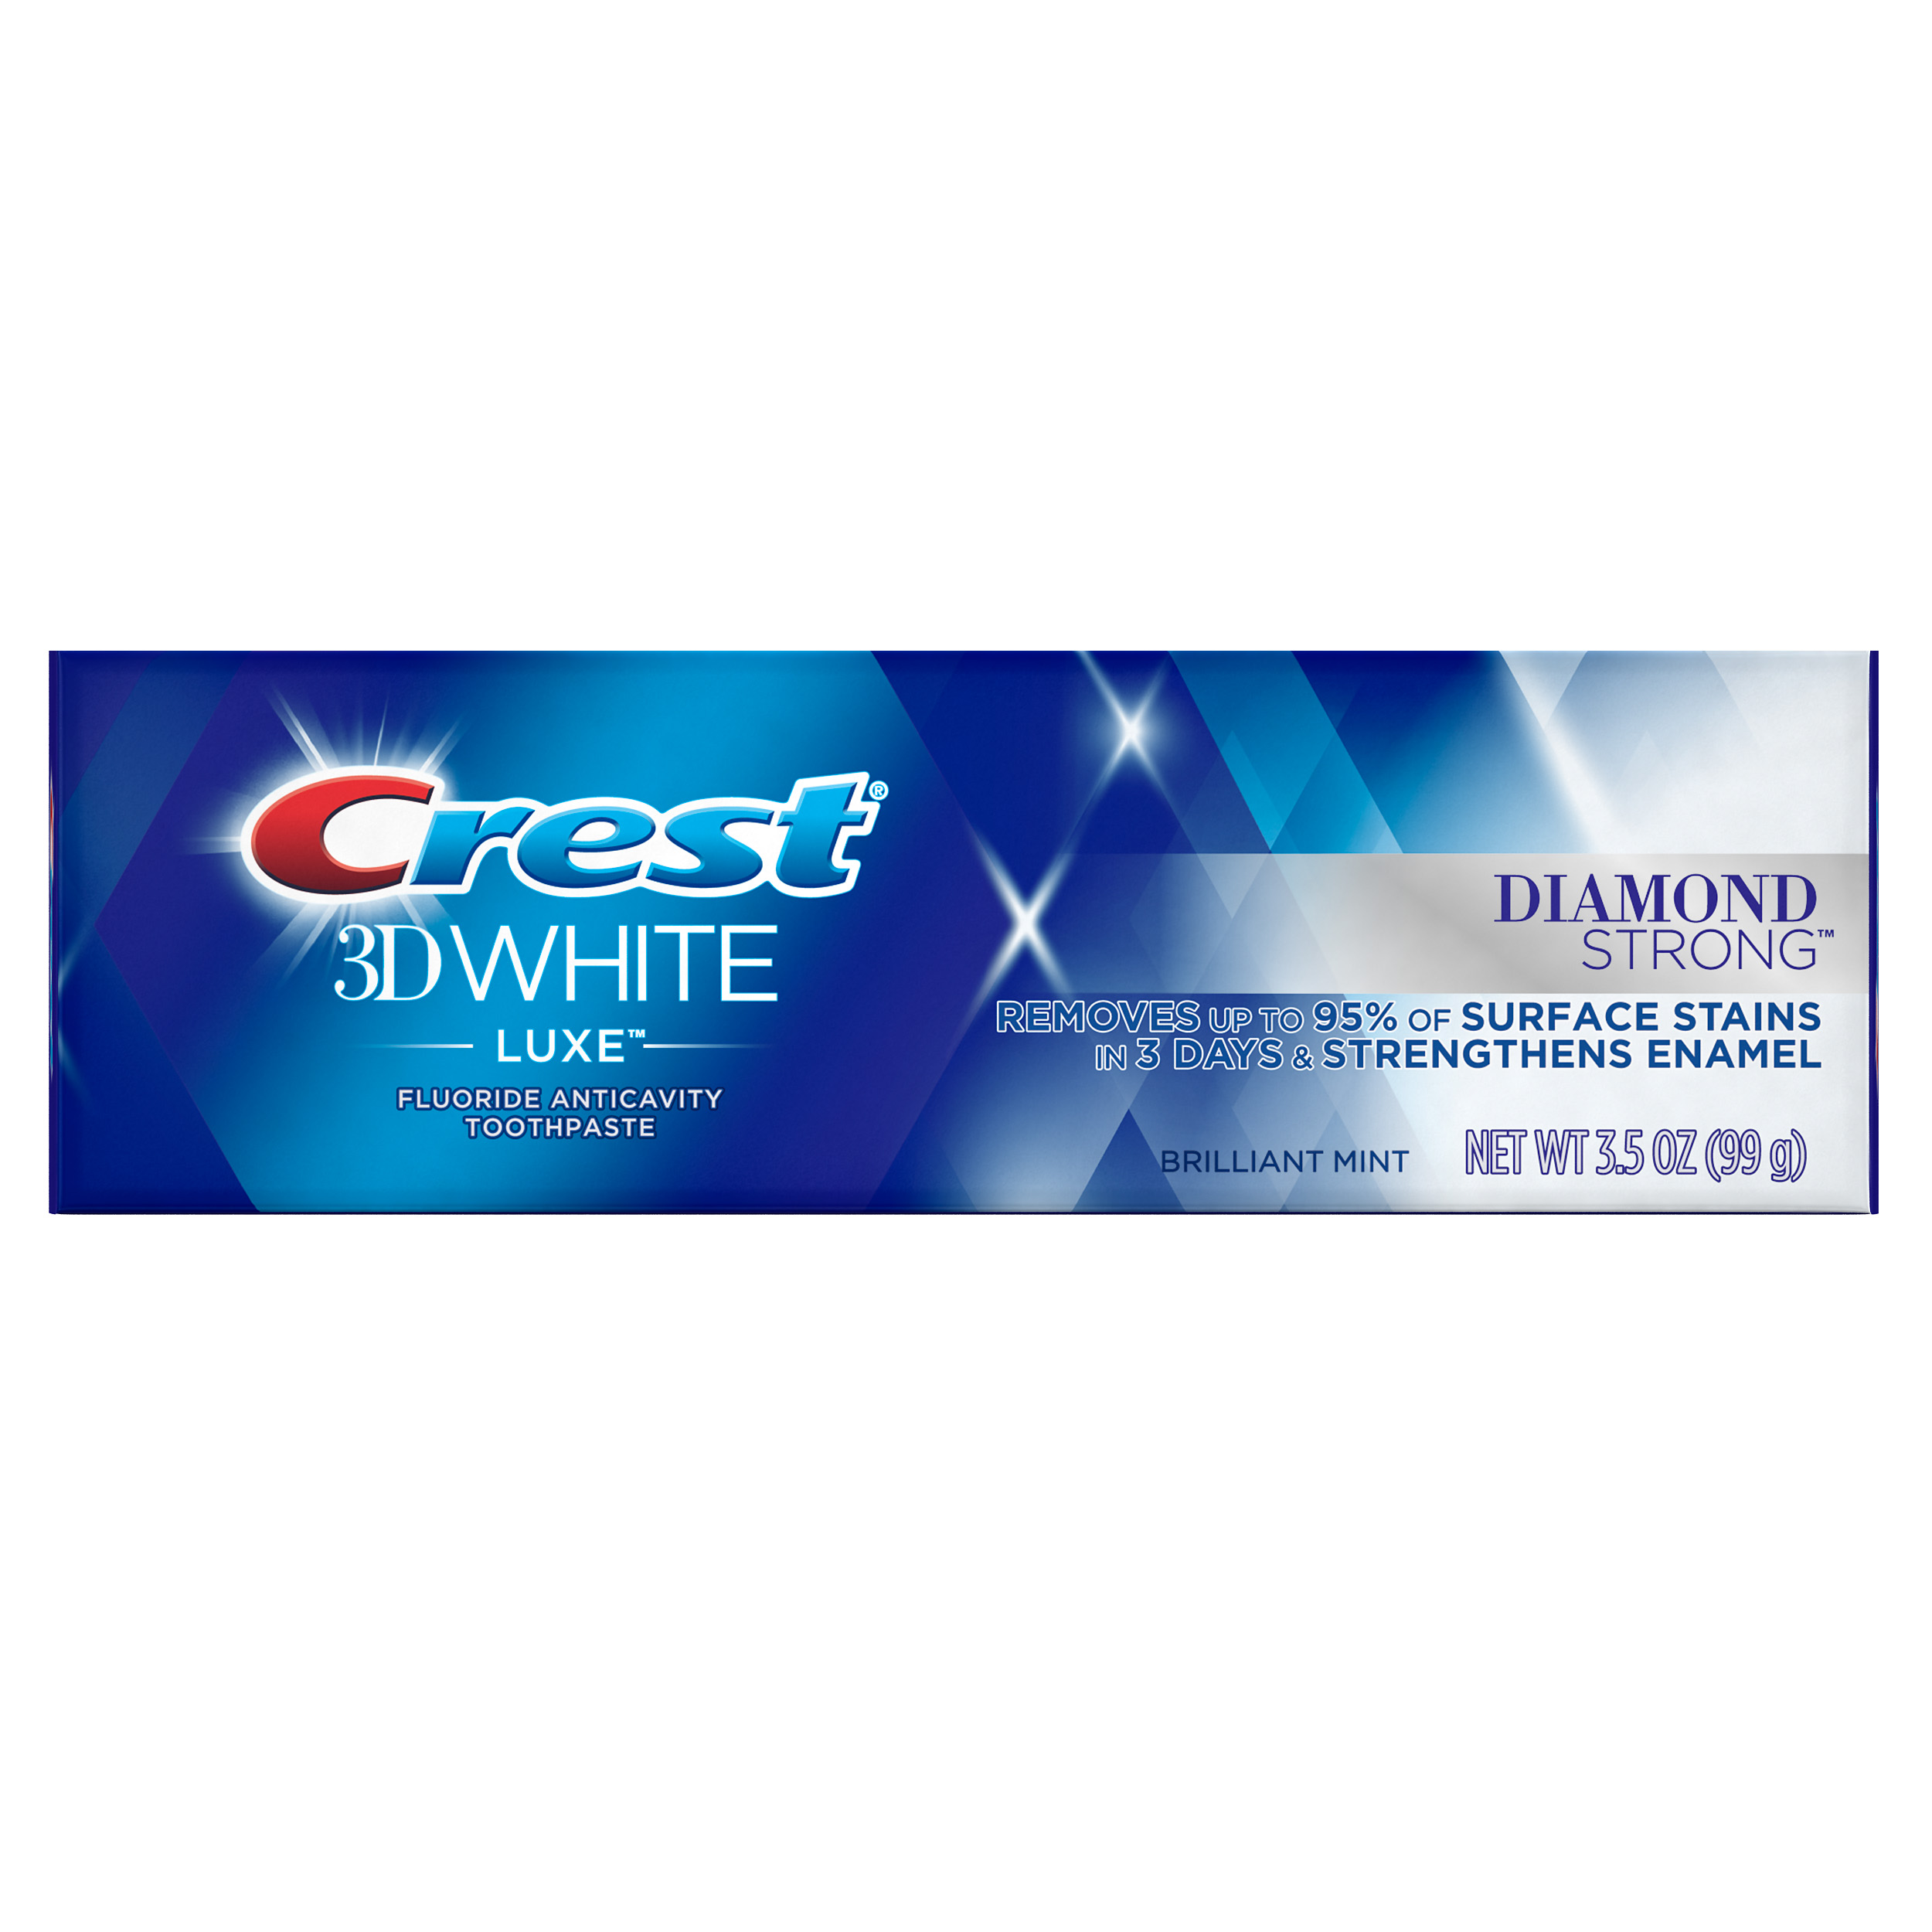 Crest 3D White Luxe Diamond Strong Whitening Toothpaste, Brilliant Mint (Choose Size)